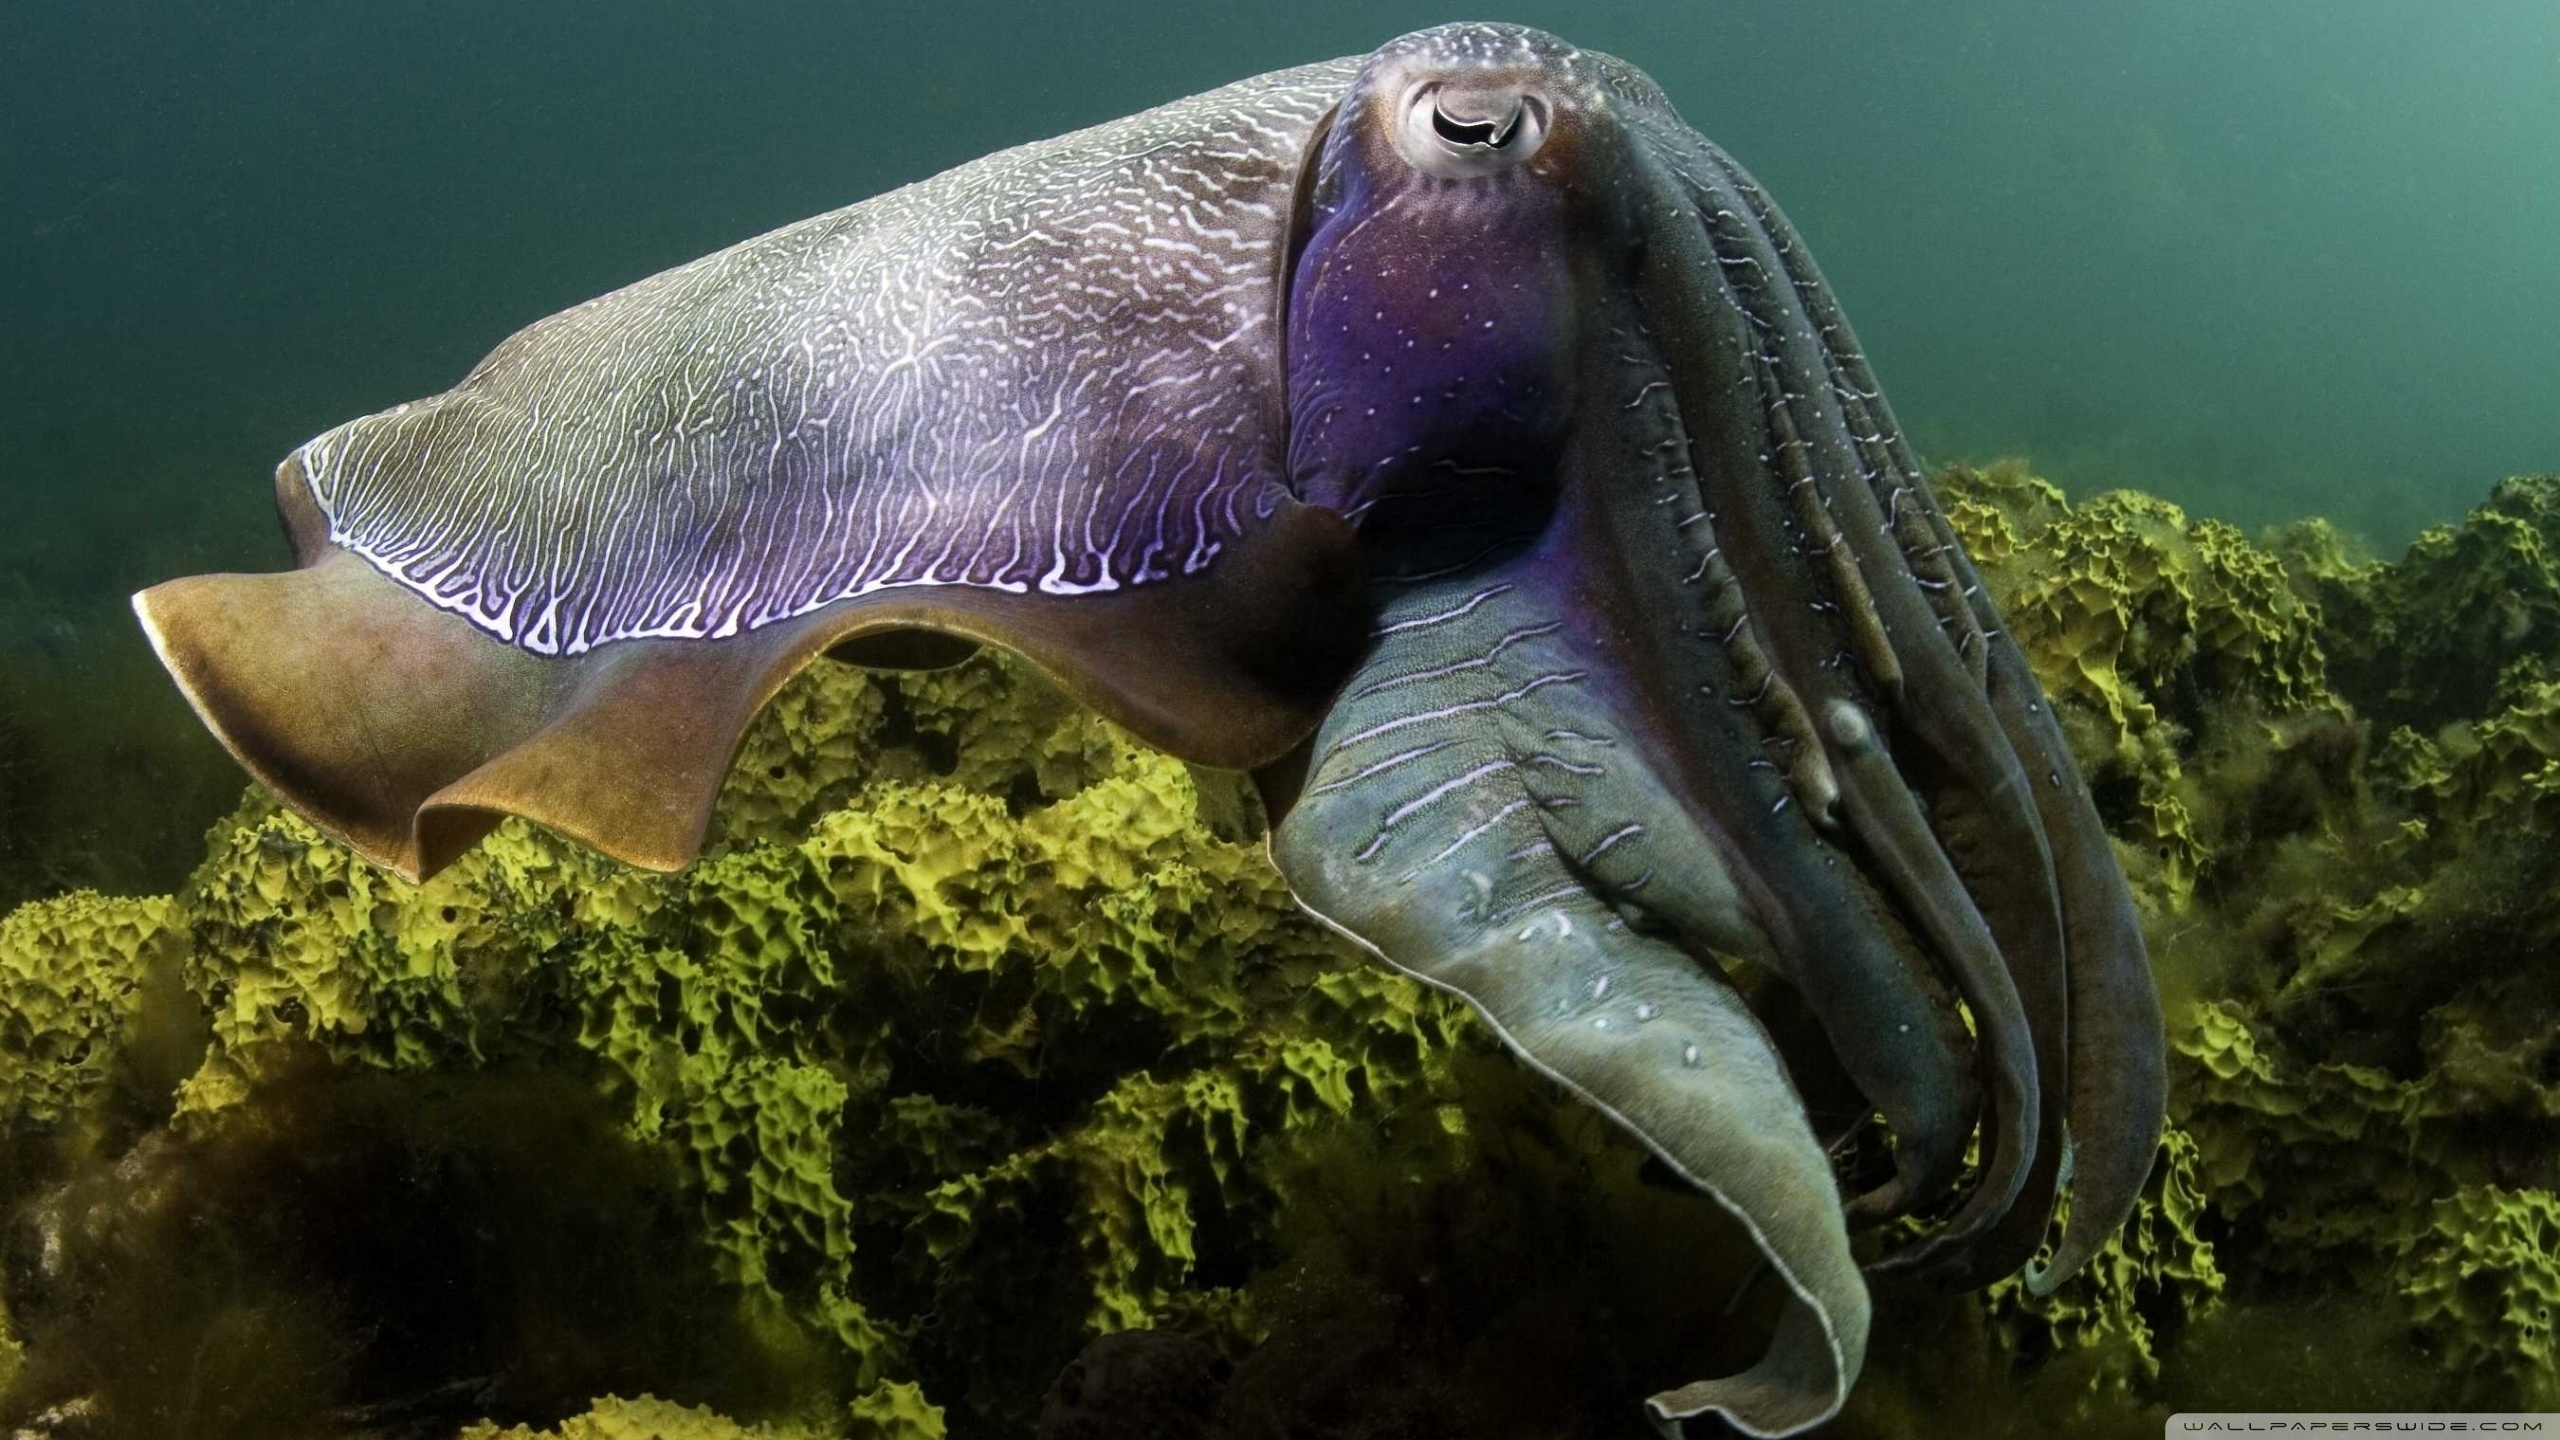 Best 58+ Cuttlefish Wallpapers on HipWallpapers